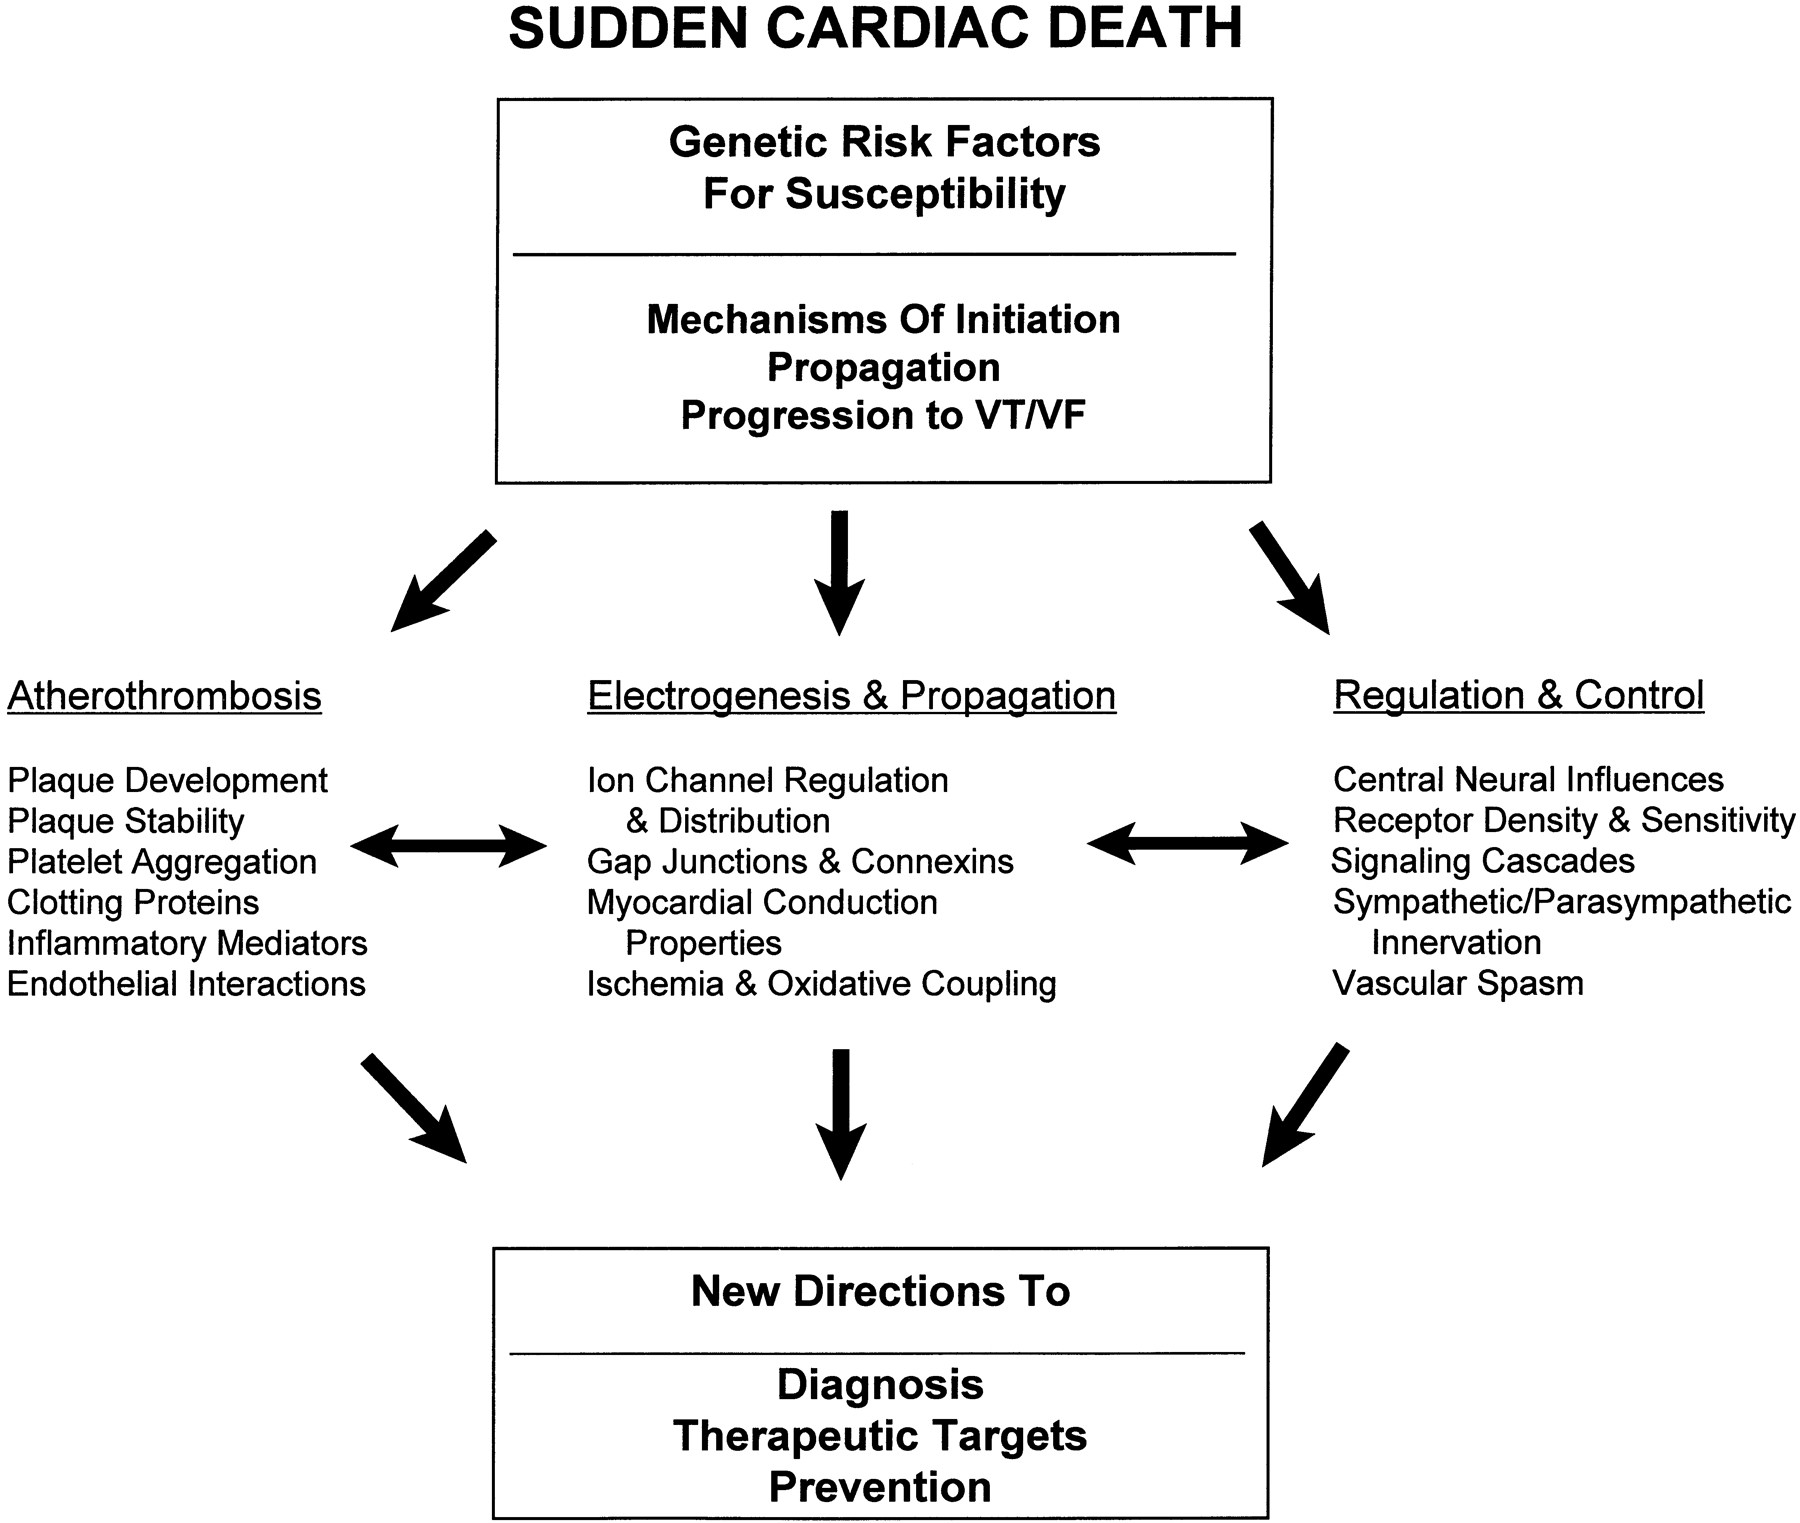 Sudden Cardiac Death, Genes, and Arrhythmogenesis | Circulation